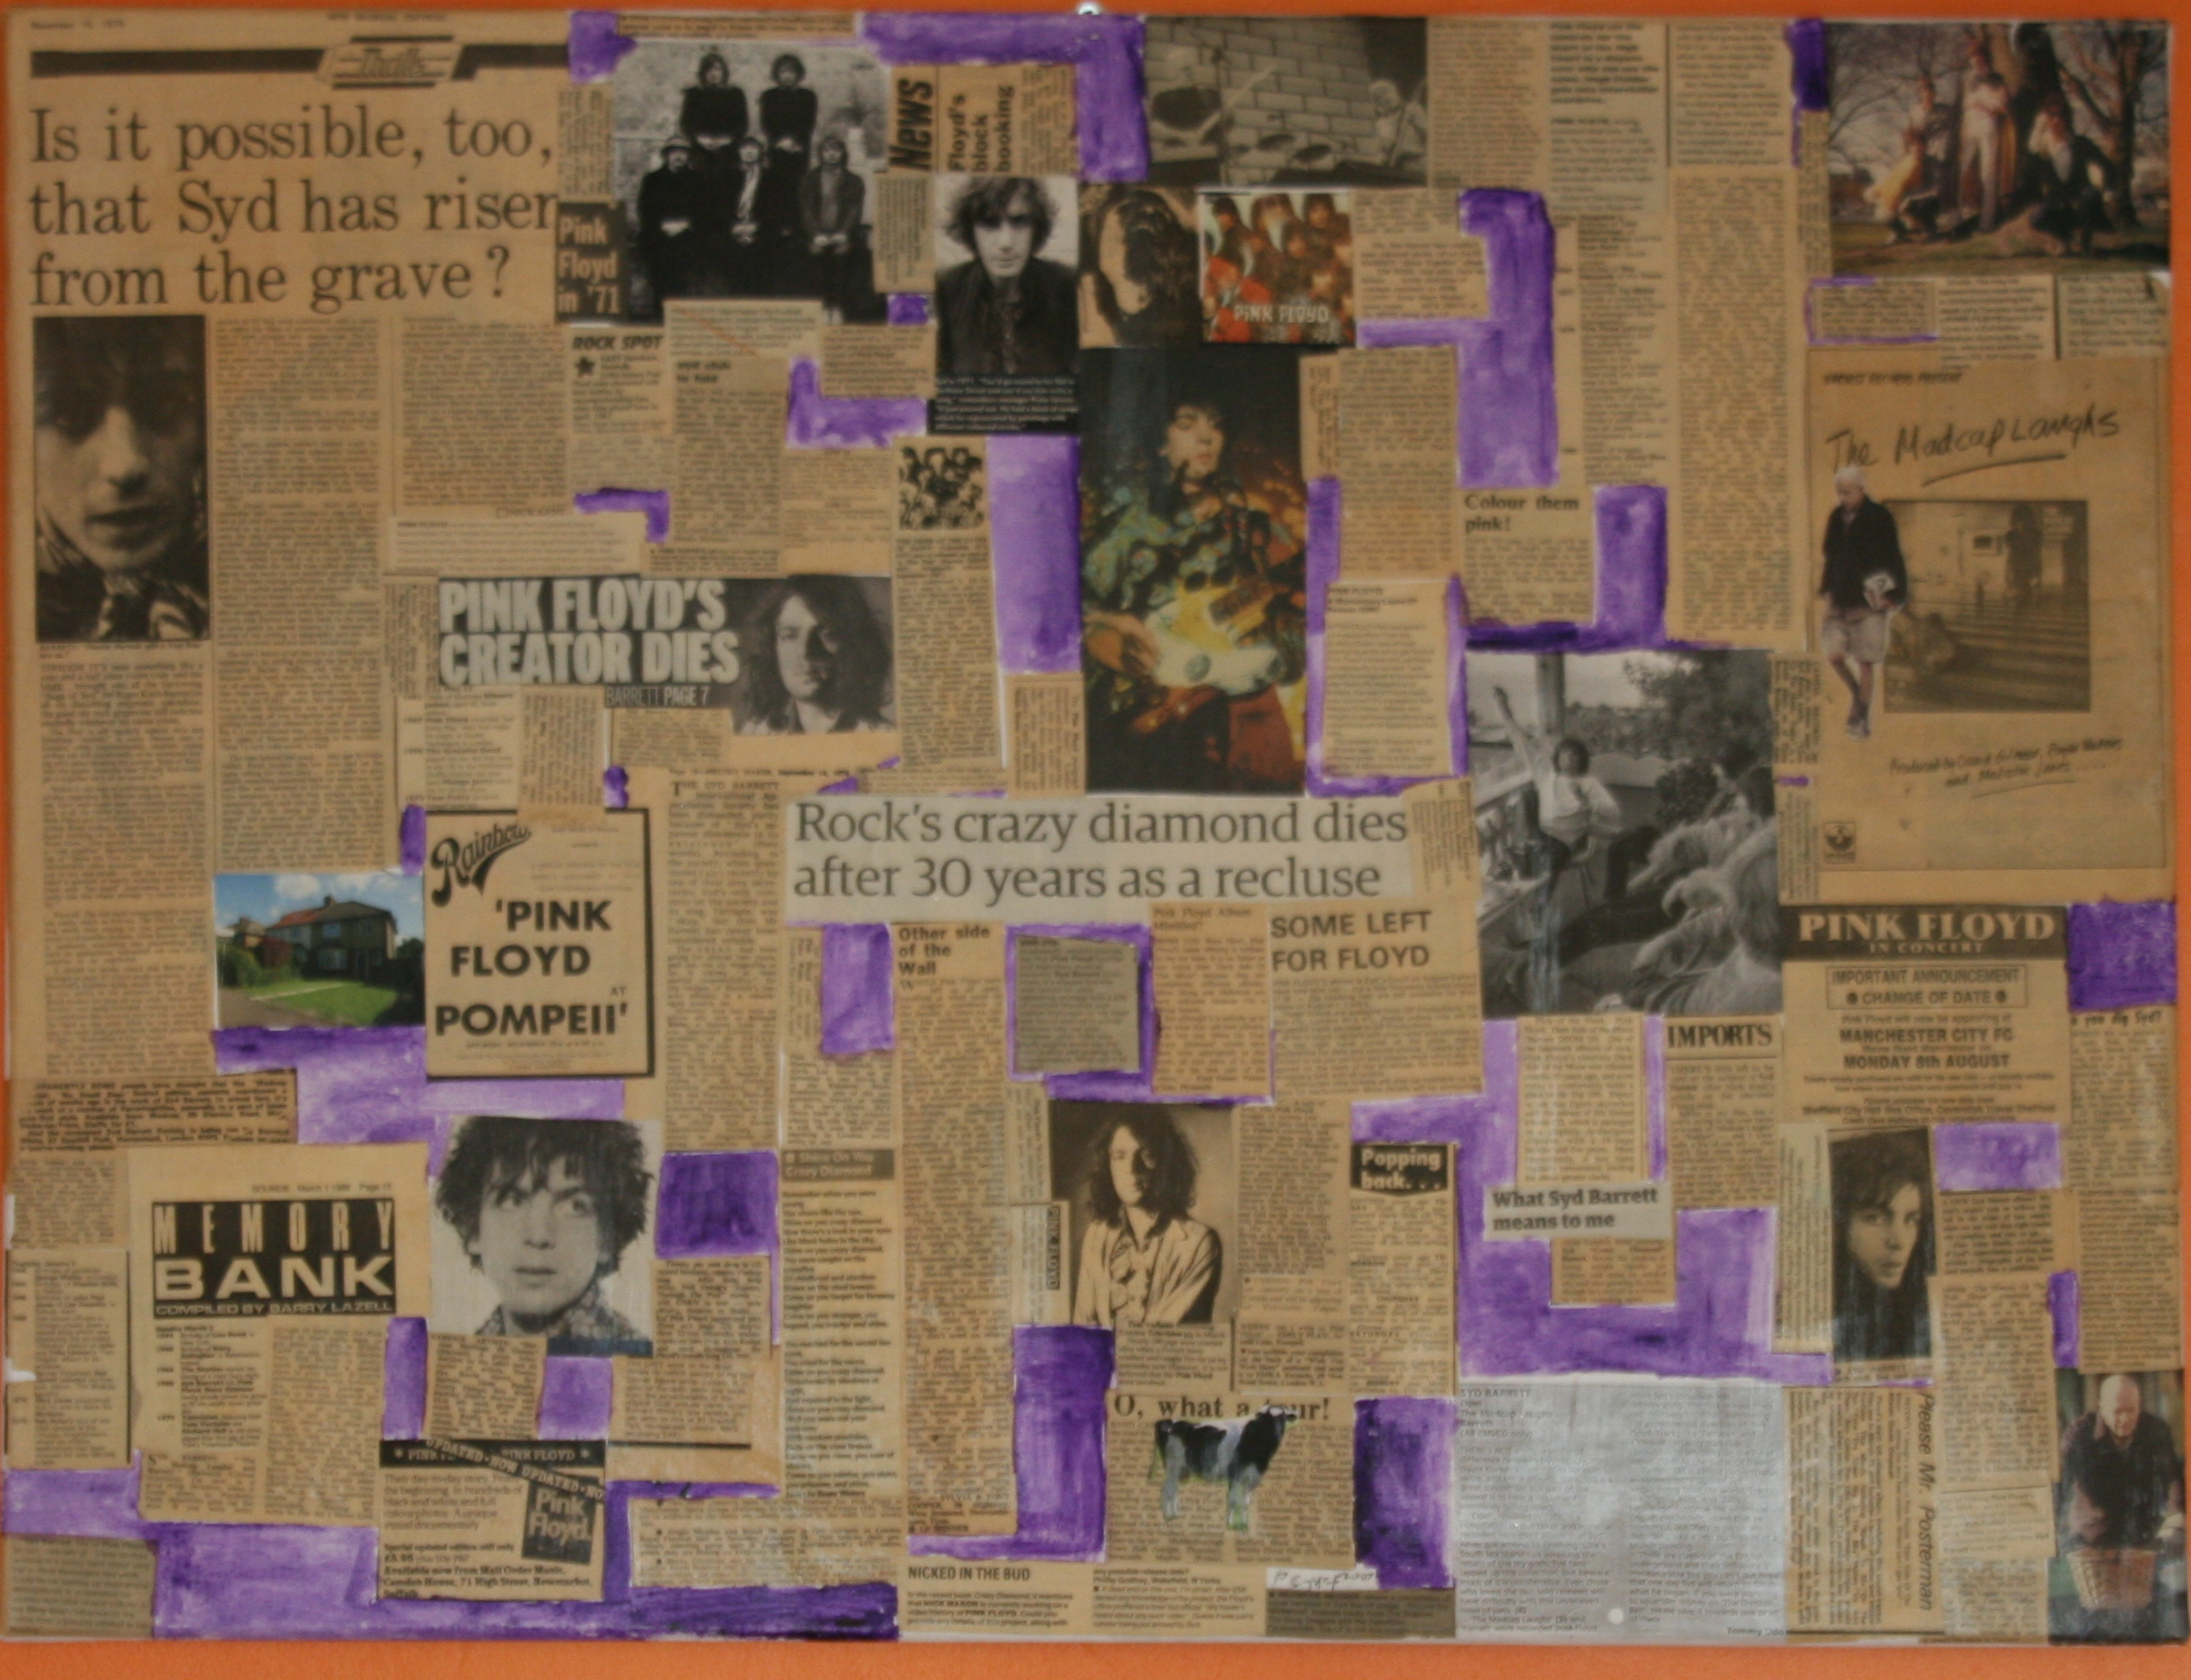 pictorial and printed word essay on Syd Barrett , founder member of Pink Floyd